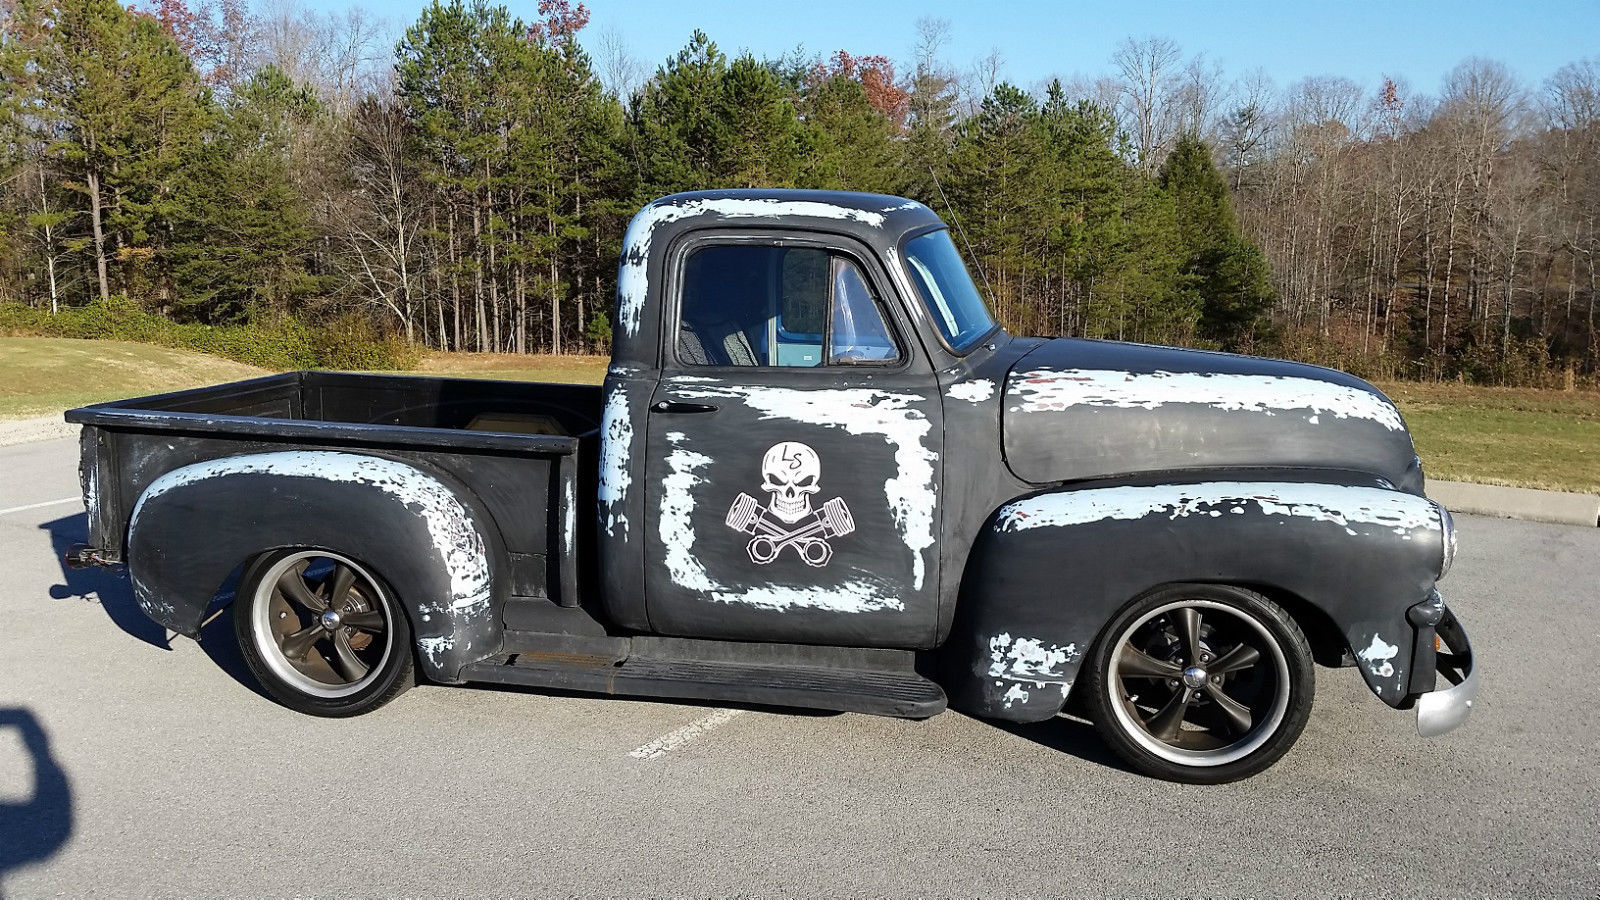 Large also Gmc Rat Rod Hotrod Shop Truck Ls Swap Overdrive Trans On S Frame as well Boltonad besides Maxresdefault additionally Lss Under Car. on chevy s10 frame swap